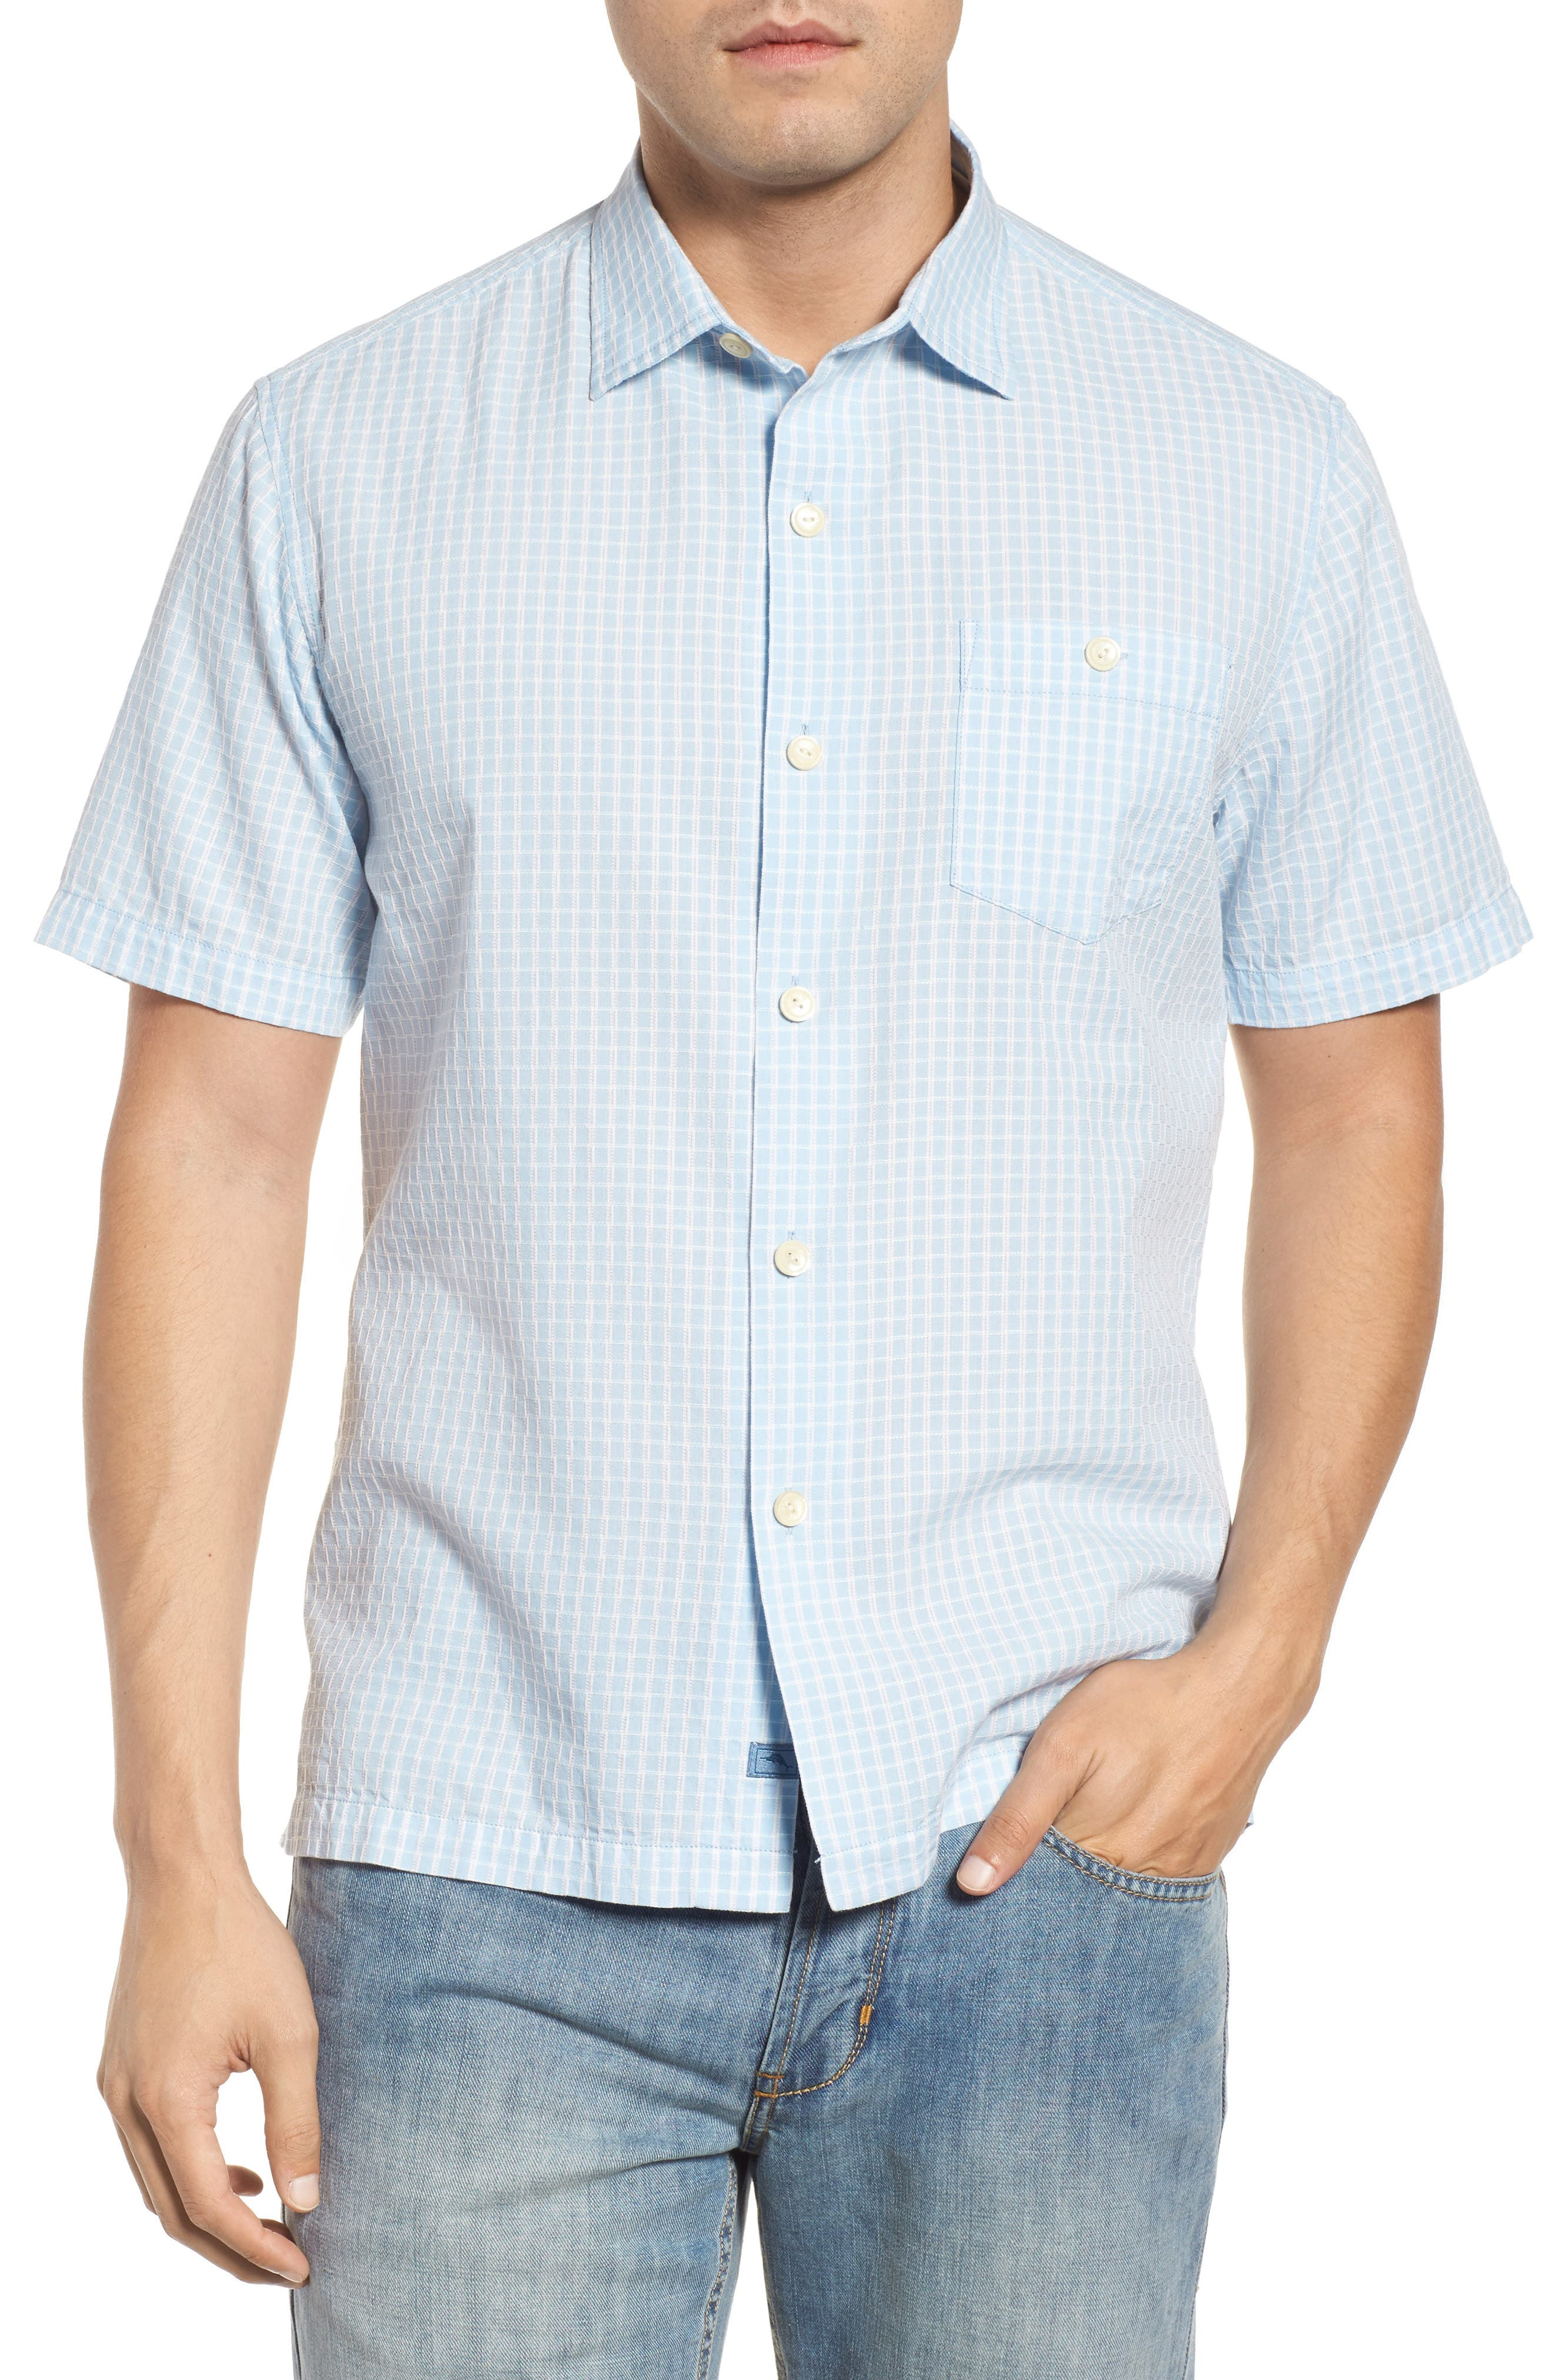 Once in a Tile Regular Fit Sport Shirt,                             Main thumbnail 1, color,                             400